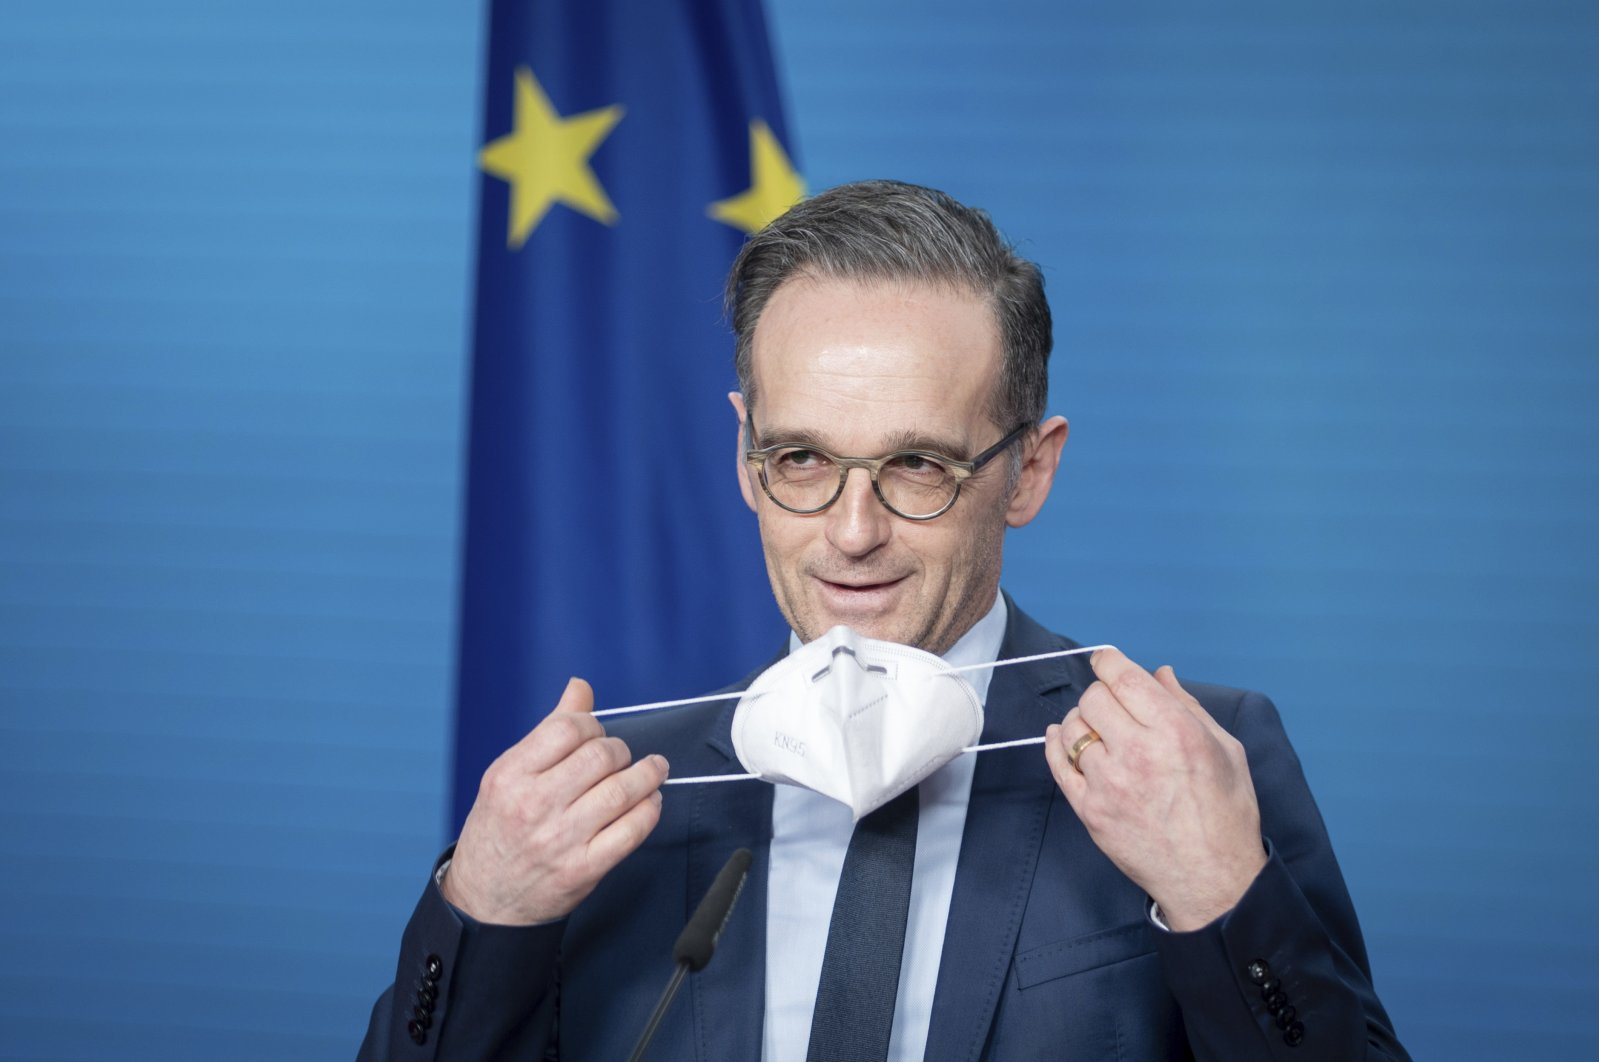 Heiko Maas, German foreign minister, puts on his mask at the end of the press conference on the informal virtual meeting of the foreign ministers of the member states of the Vienna nuclear agreement in Berlin, Germany, Dec. 21, 2020. (AP Photo)